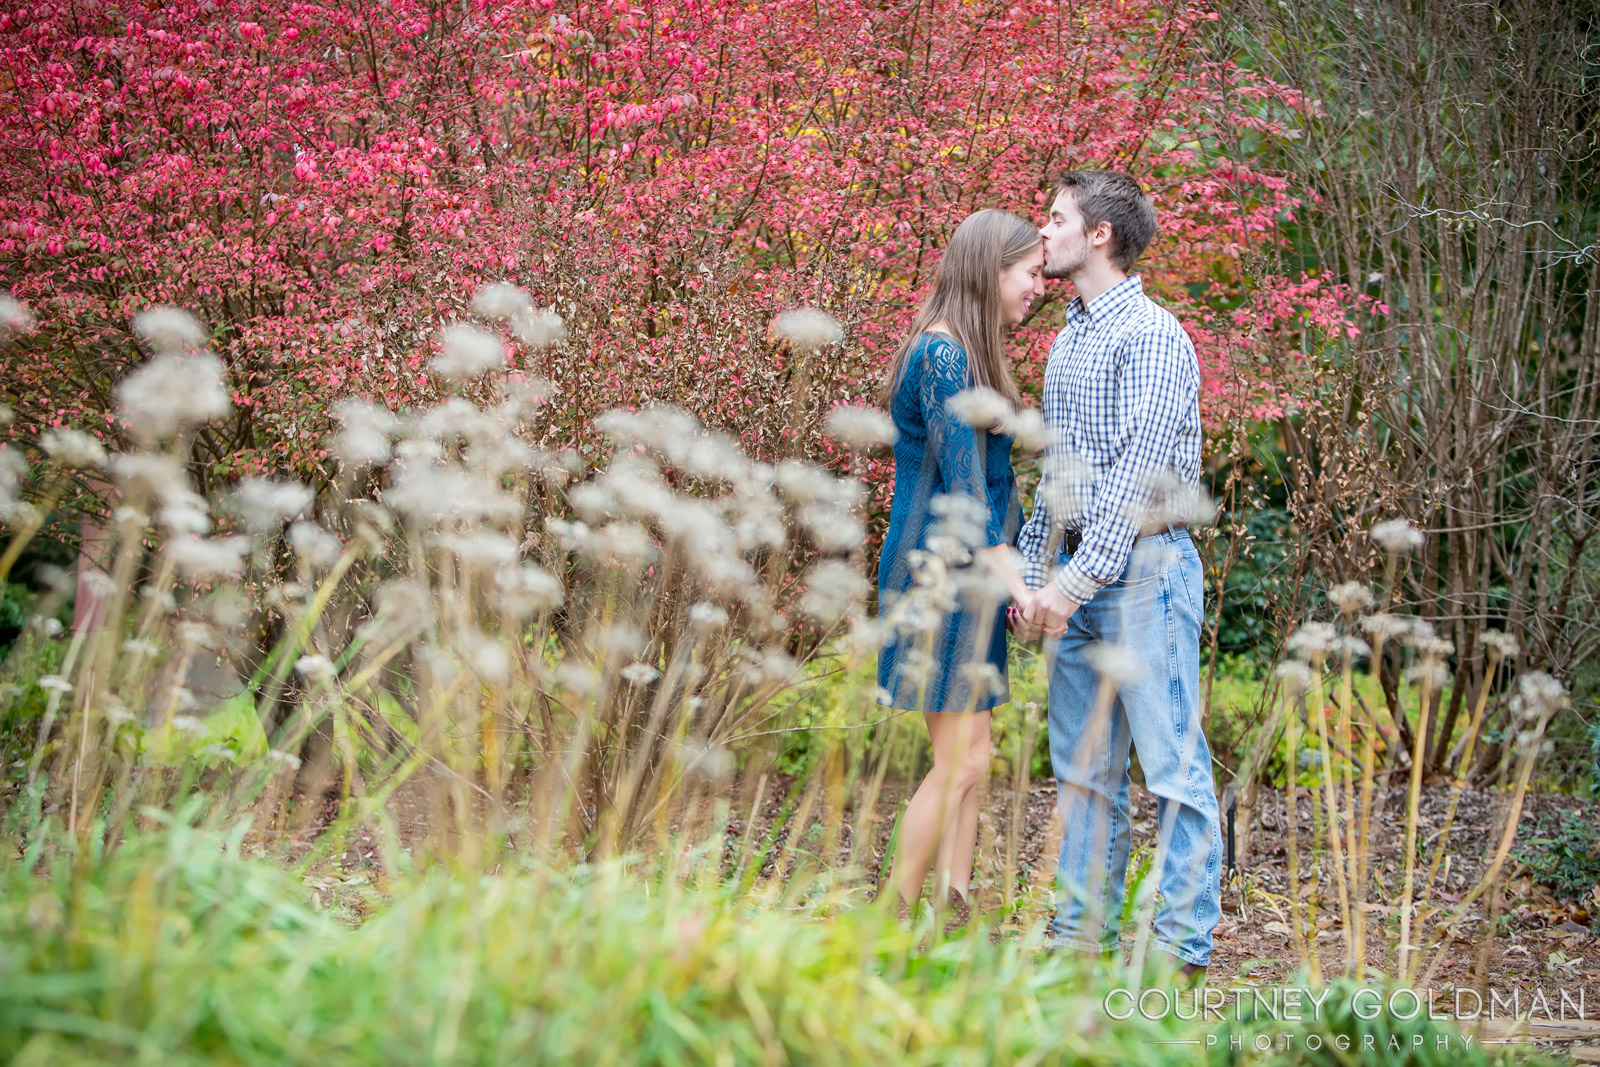 Atlanta-Couples-Engagement-Proposal-Photography-by-Courtney-Goldman-05.jpg